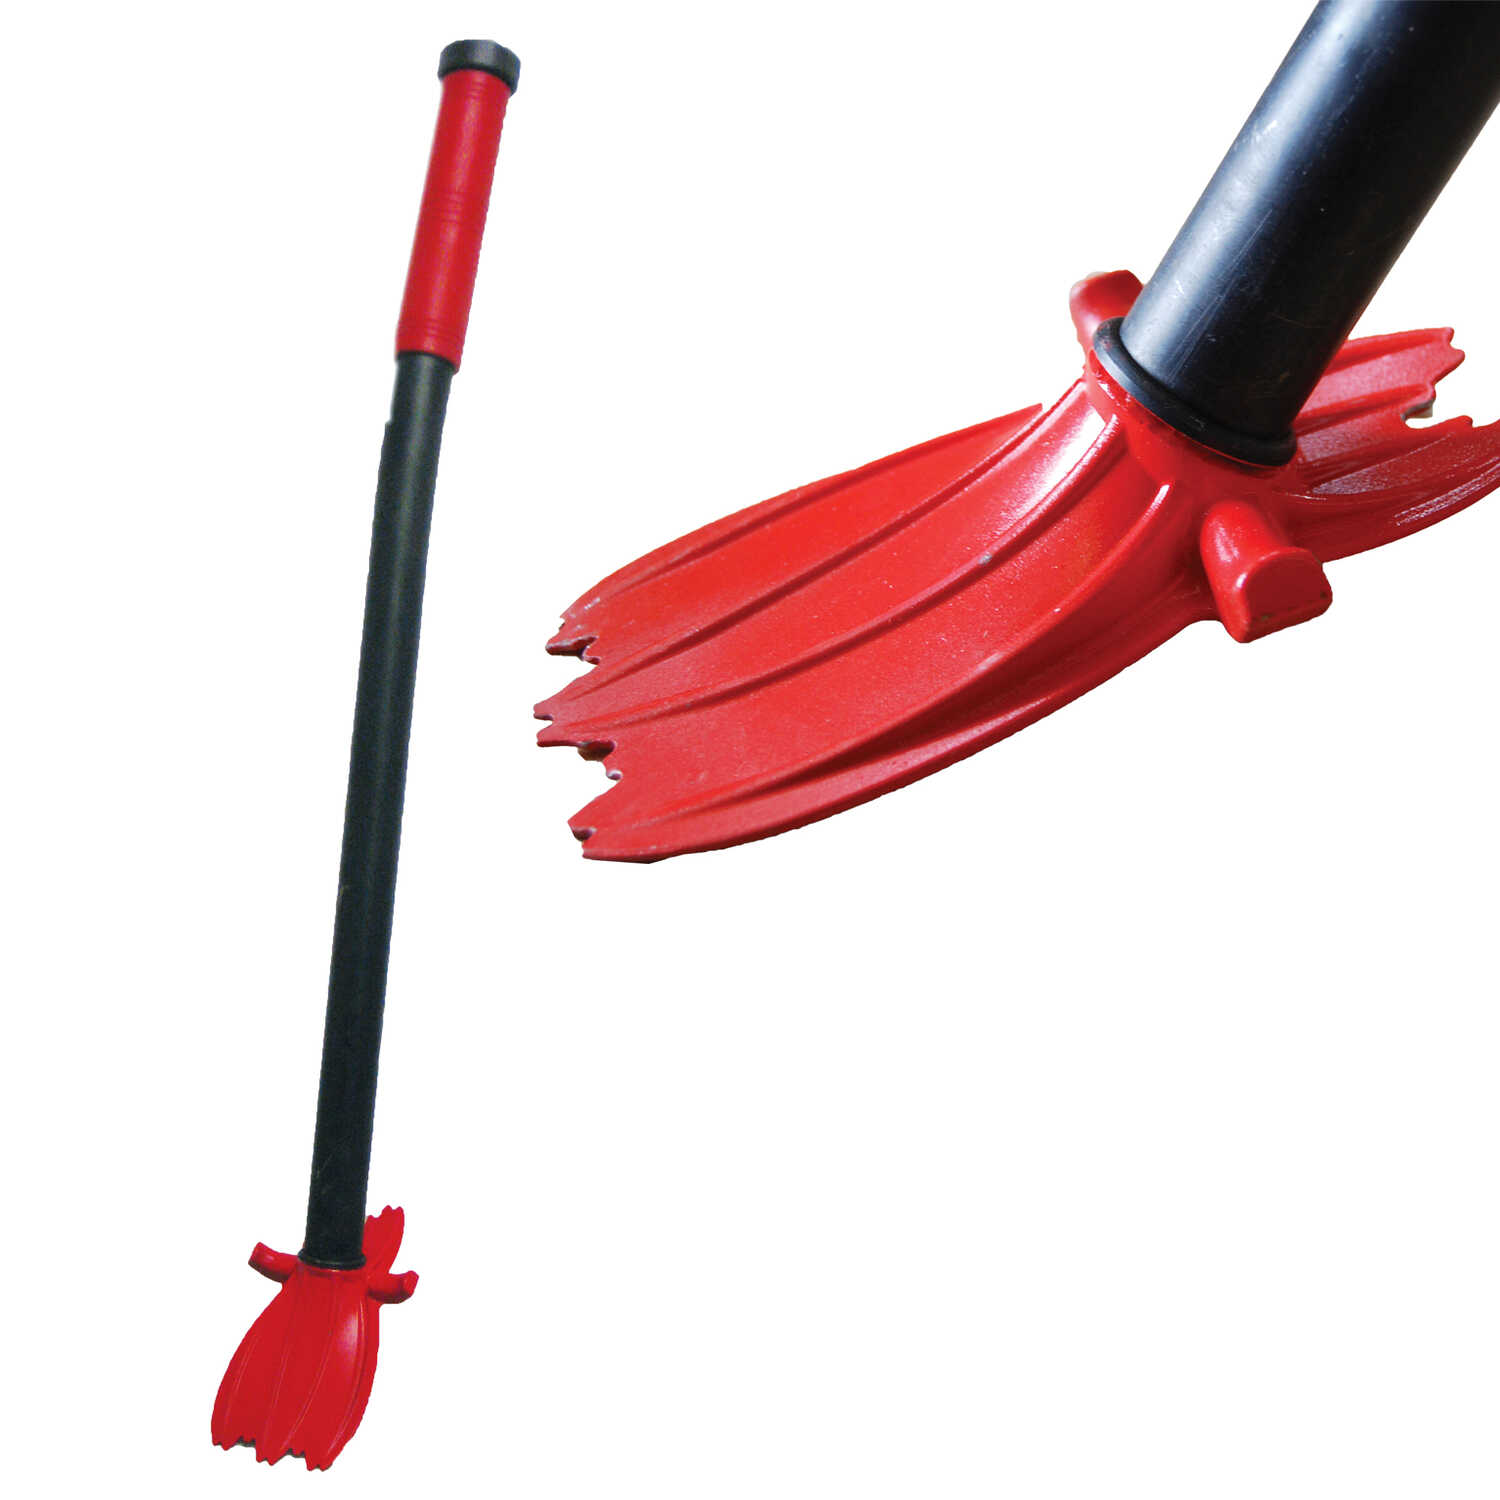 Roofers World  Little Red Ripper  Carbon Steel  3 in. W x 32 in. L Shingle Remover